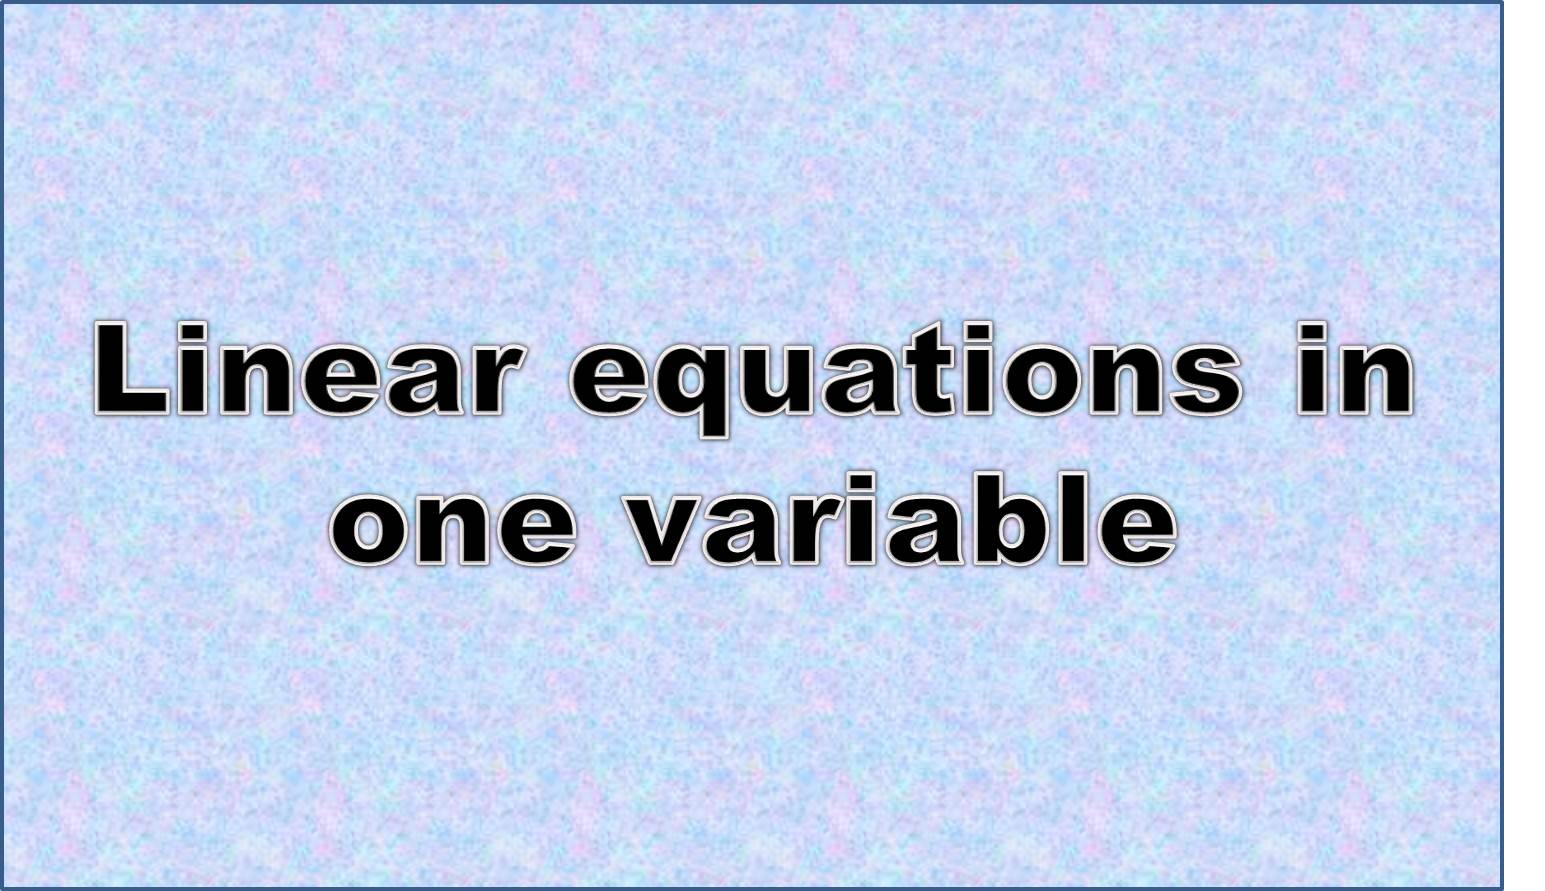 http://study.aisectonline.com/images/Equations with parentheses.jpg